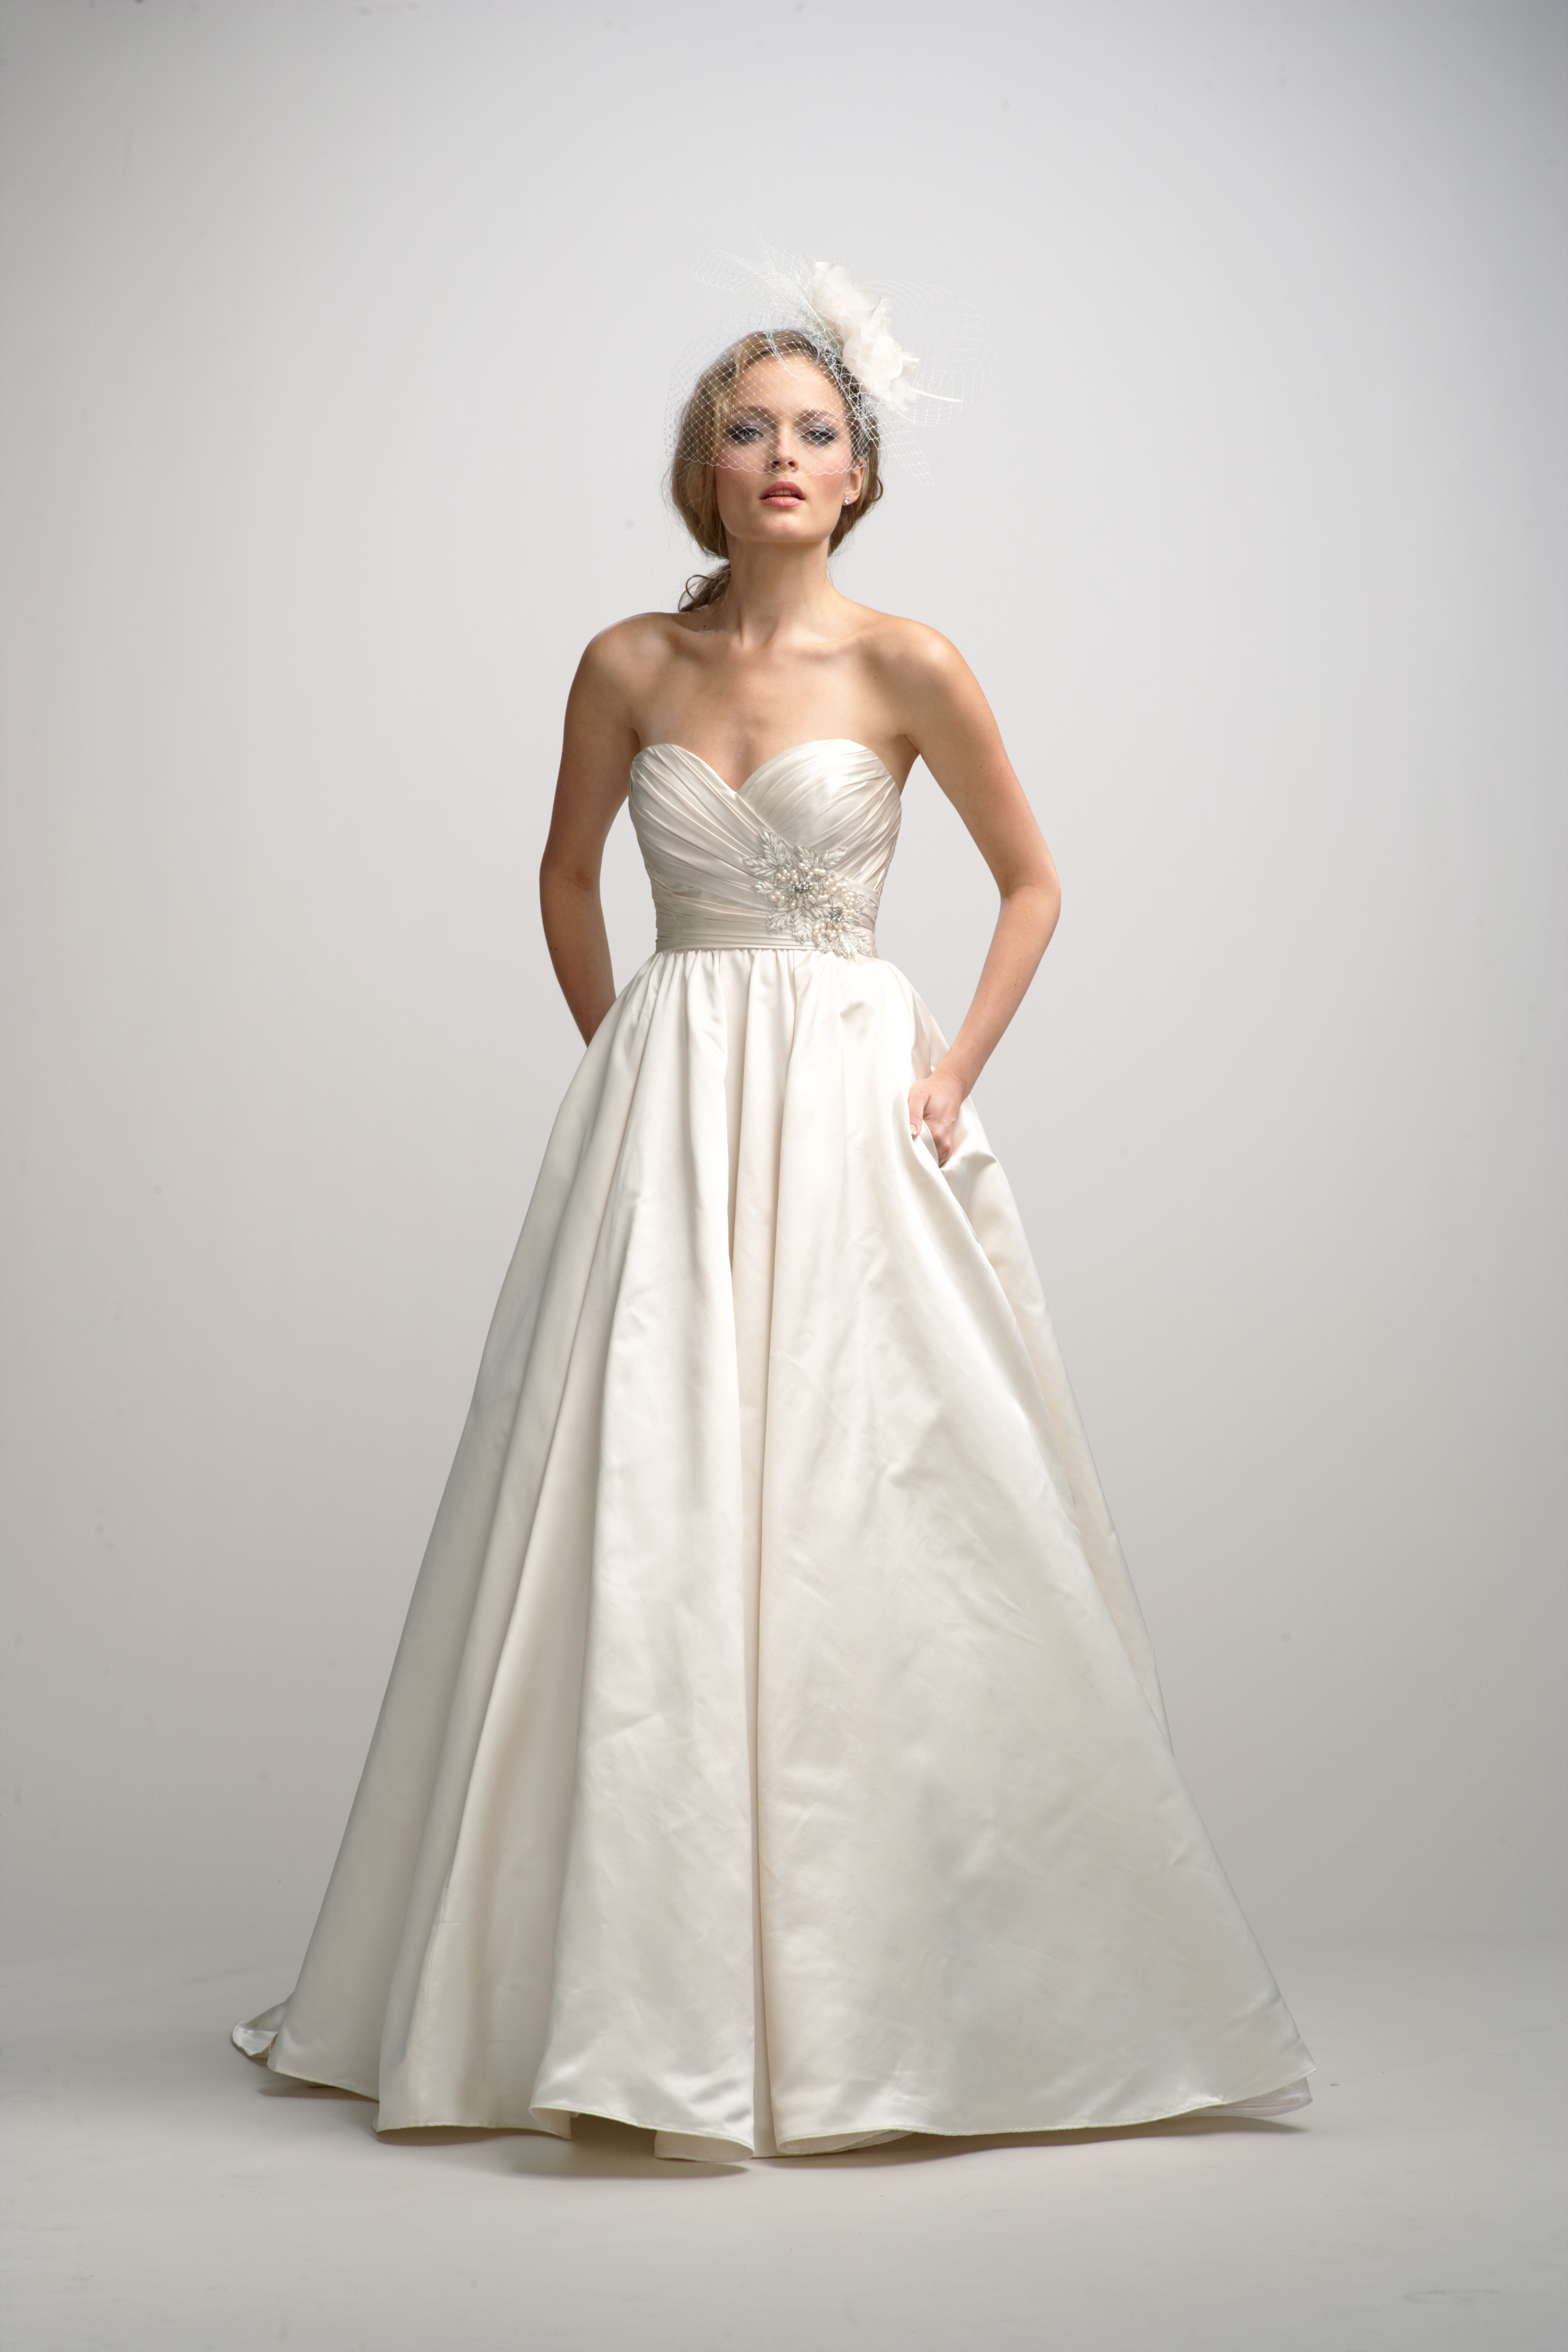 Fall-2012-wedding-dress-watters-bridal-gown-2.original.original